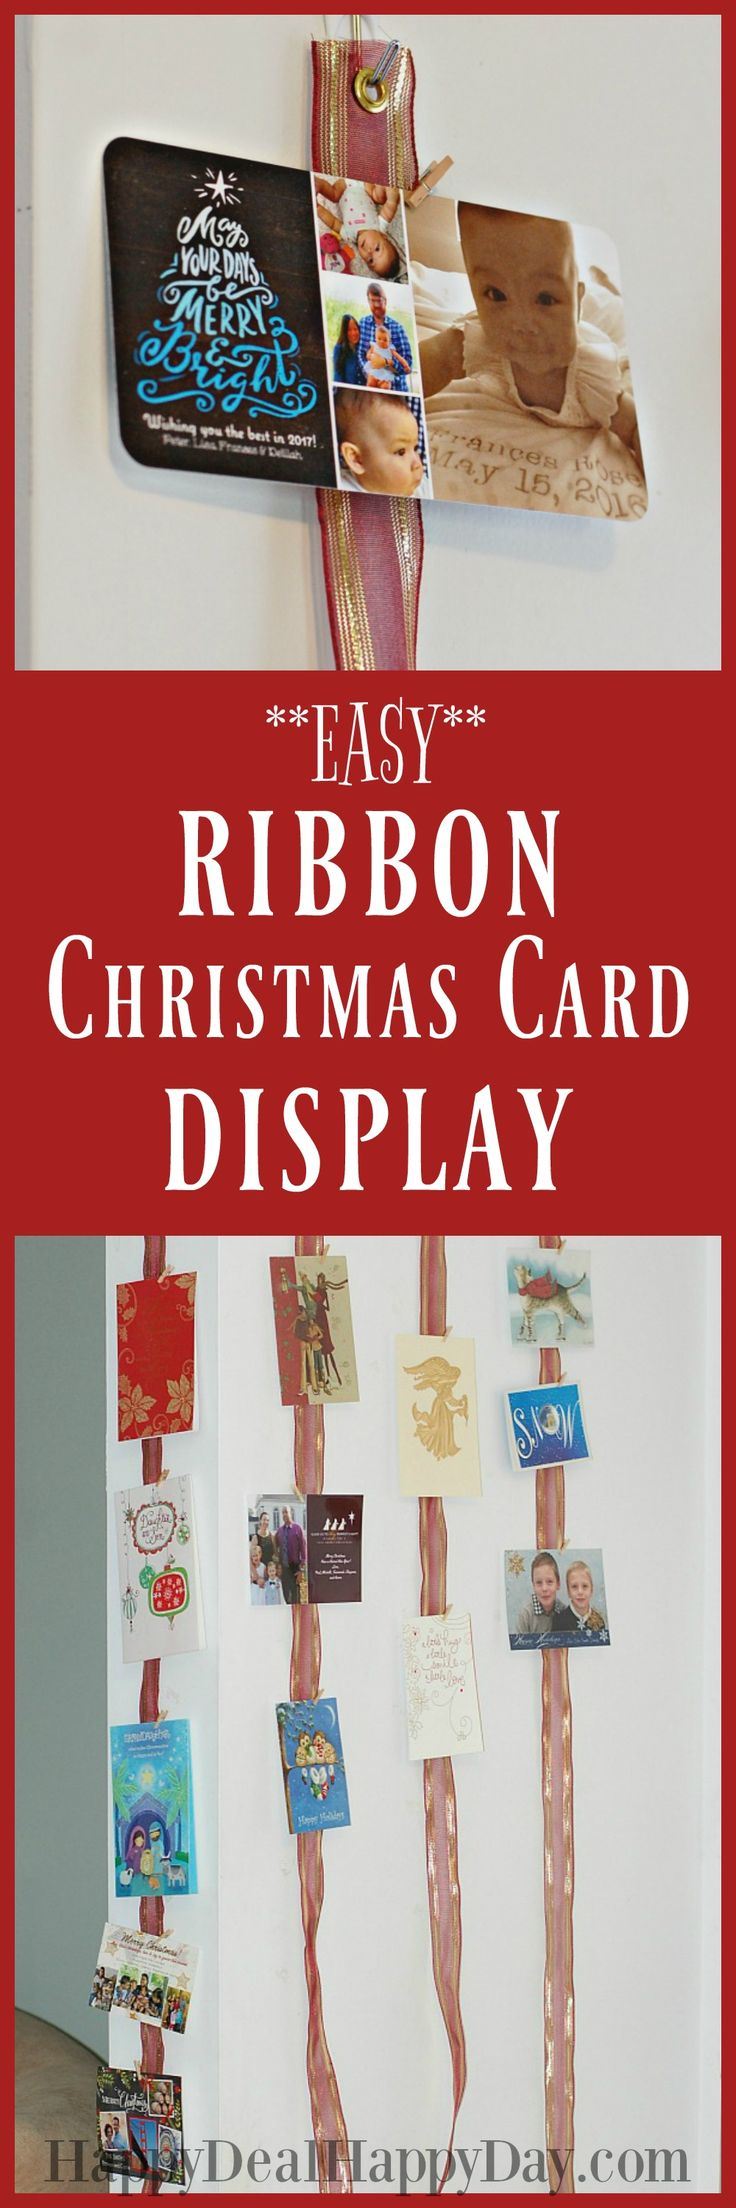 Hometalk diy christmas window decoration - How To Make A Ribbon Christmas Card Display Christmas Card Displaydiy Christmas Decorationsholiday